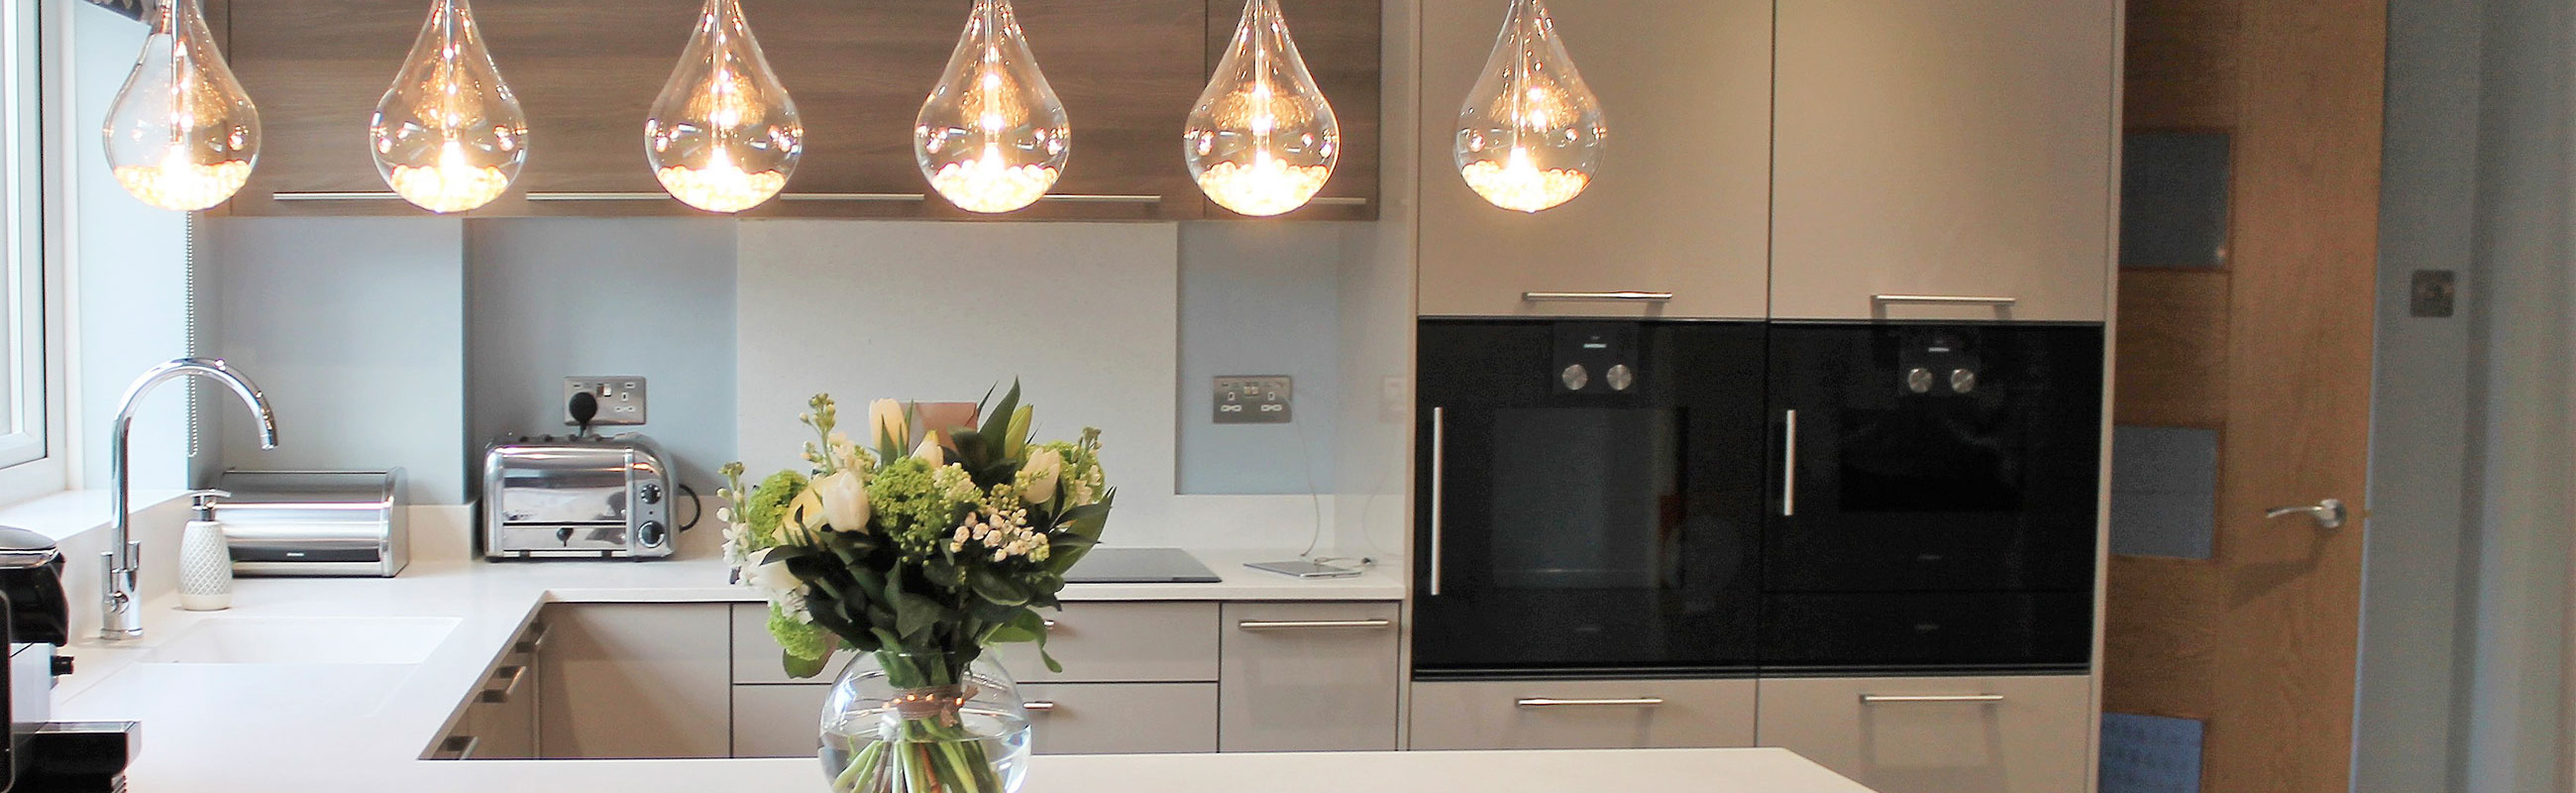 Handled German Kitchen With Statement Lighting And Gaggenau Appliances    Kedleston Interiors I Bespoke Kitchens And Bathrooms